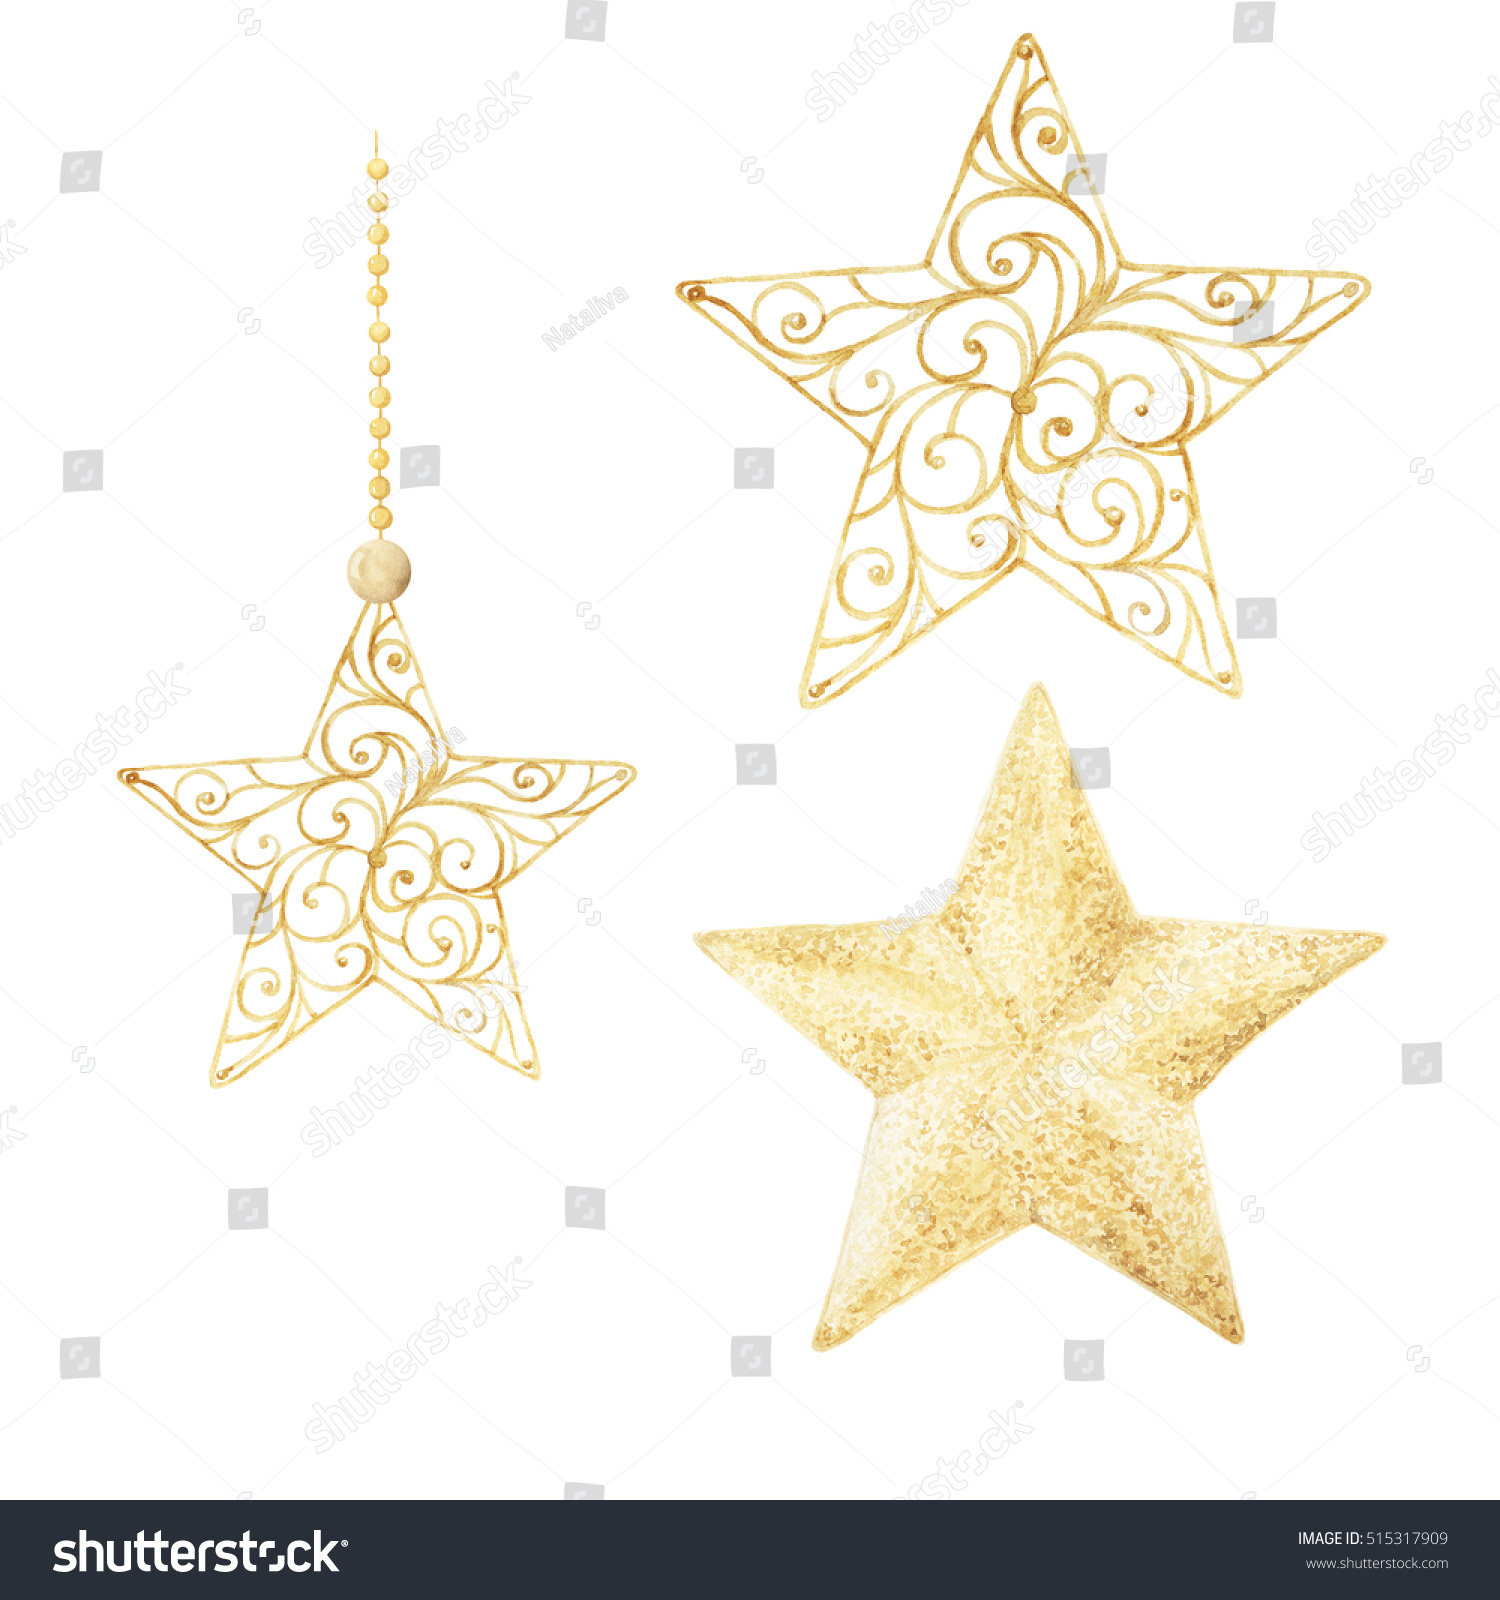 watercolor christmas stars christmas decorations decorative elements hand drawn watercolor illustration - Christmas Star Decorations